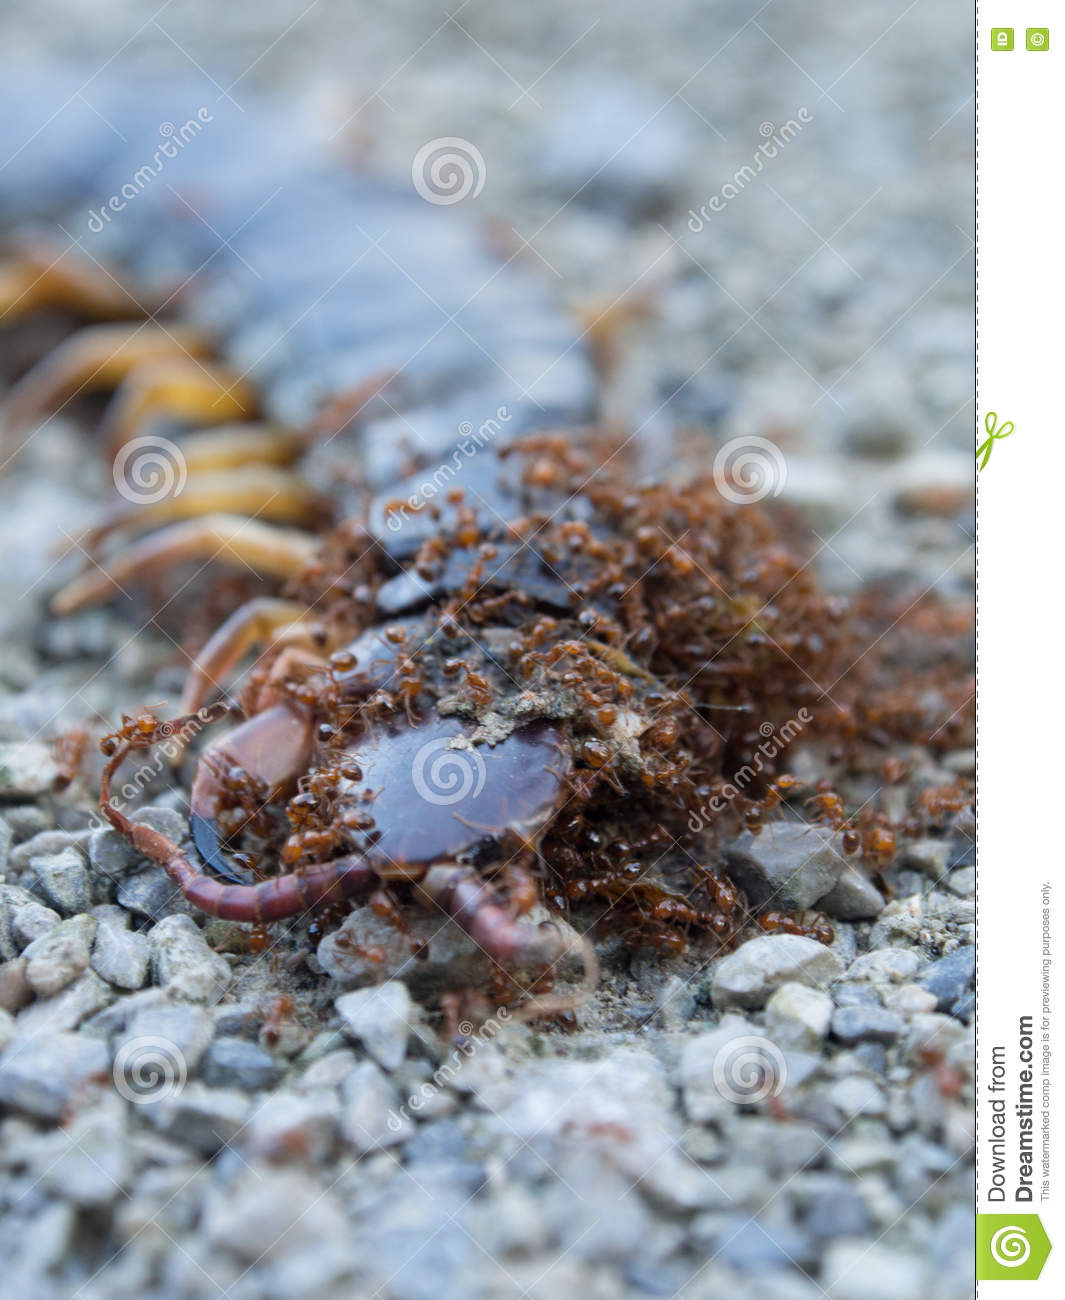 Ants Swarmed By A Large Centipede Bite  Stock Photo - Image